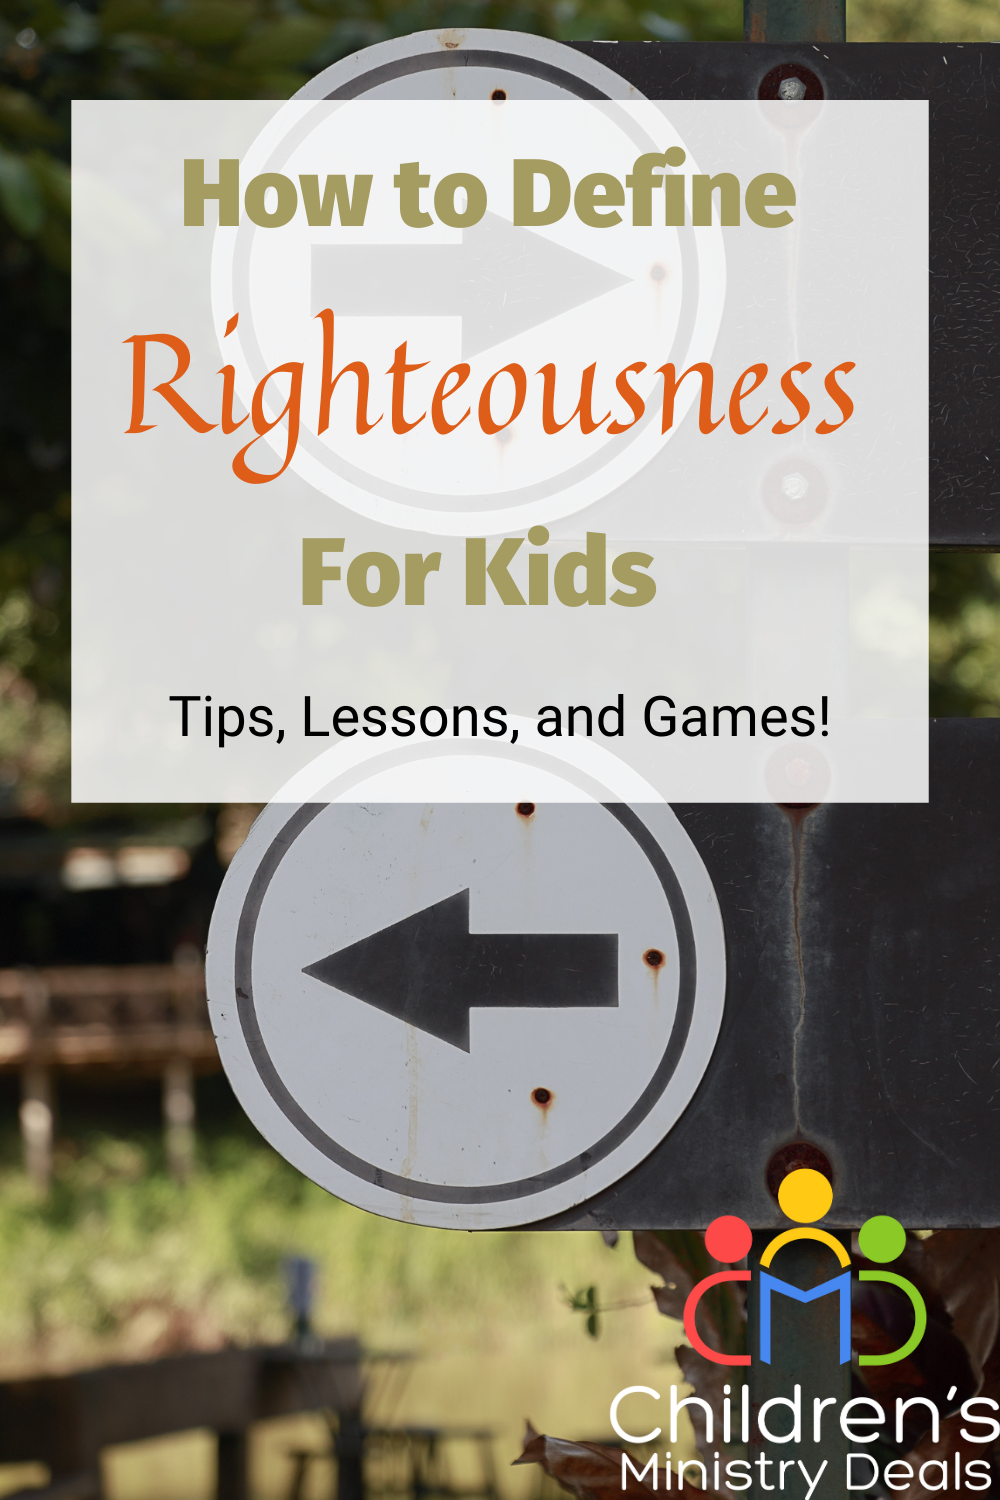 How To Define Righteousness for Kids